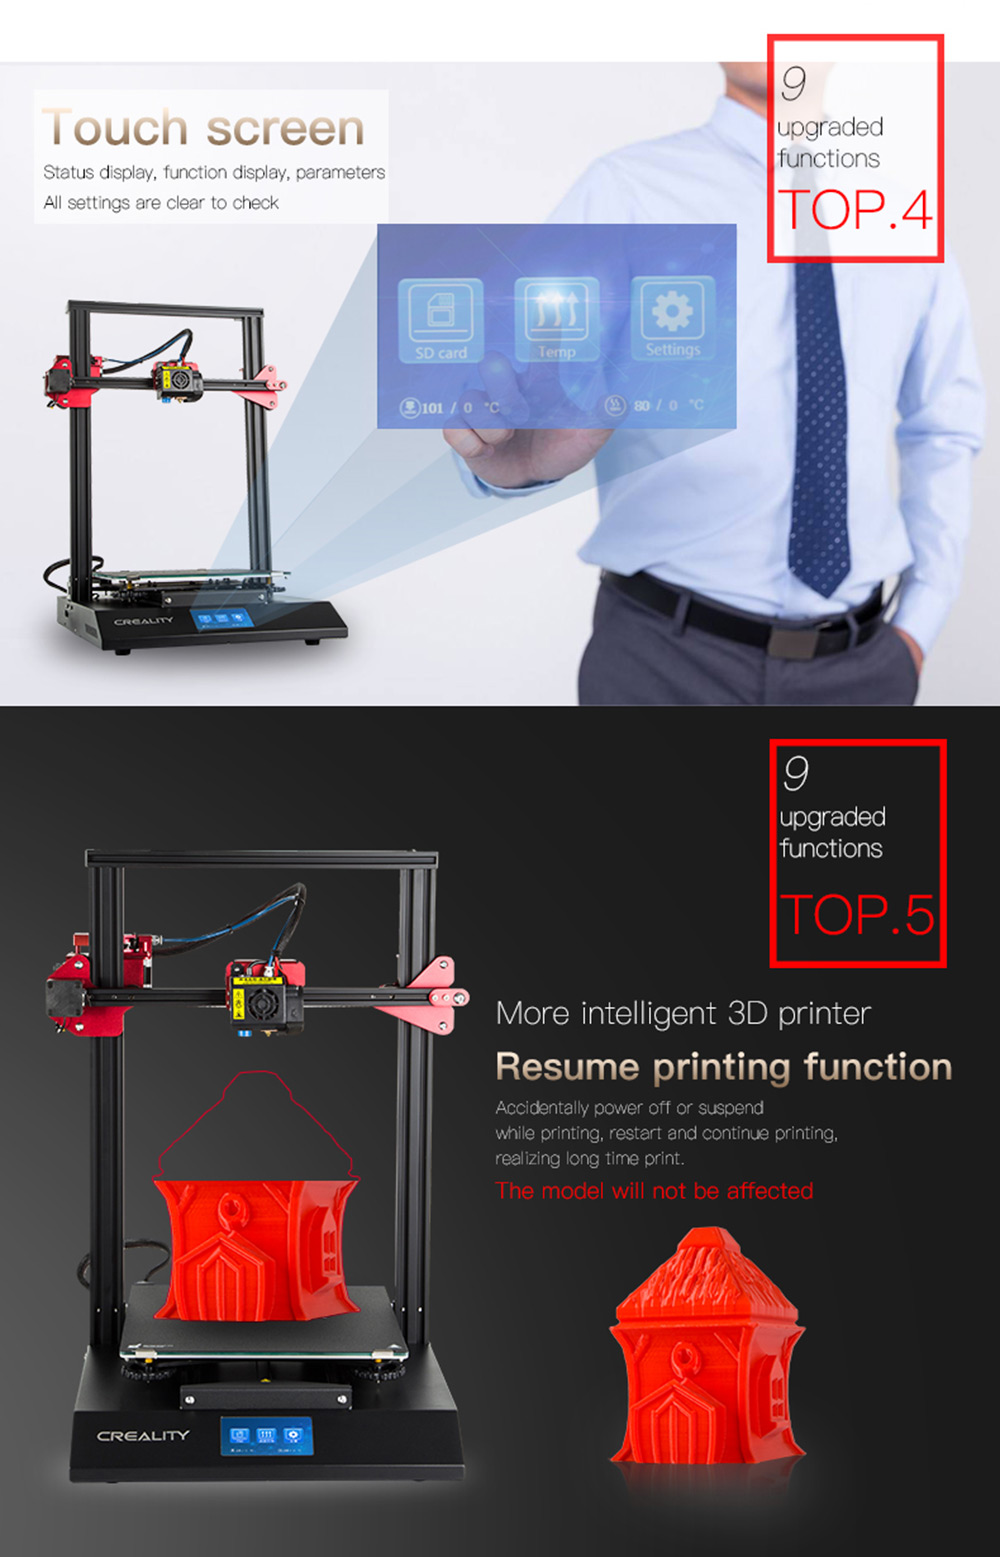 CREALITY 3D CR-10S Pro Auto Leveling Sensor Printer 4.3 inch Touch LCD Resume Printing Filament Detection Funtion Mean Well Power - Black EU Plug